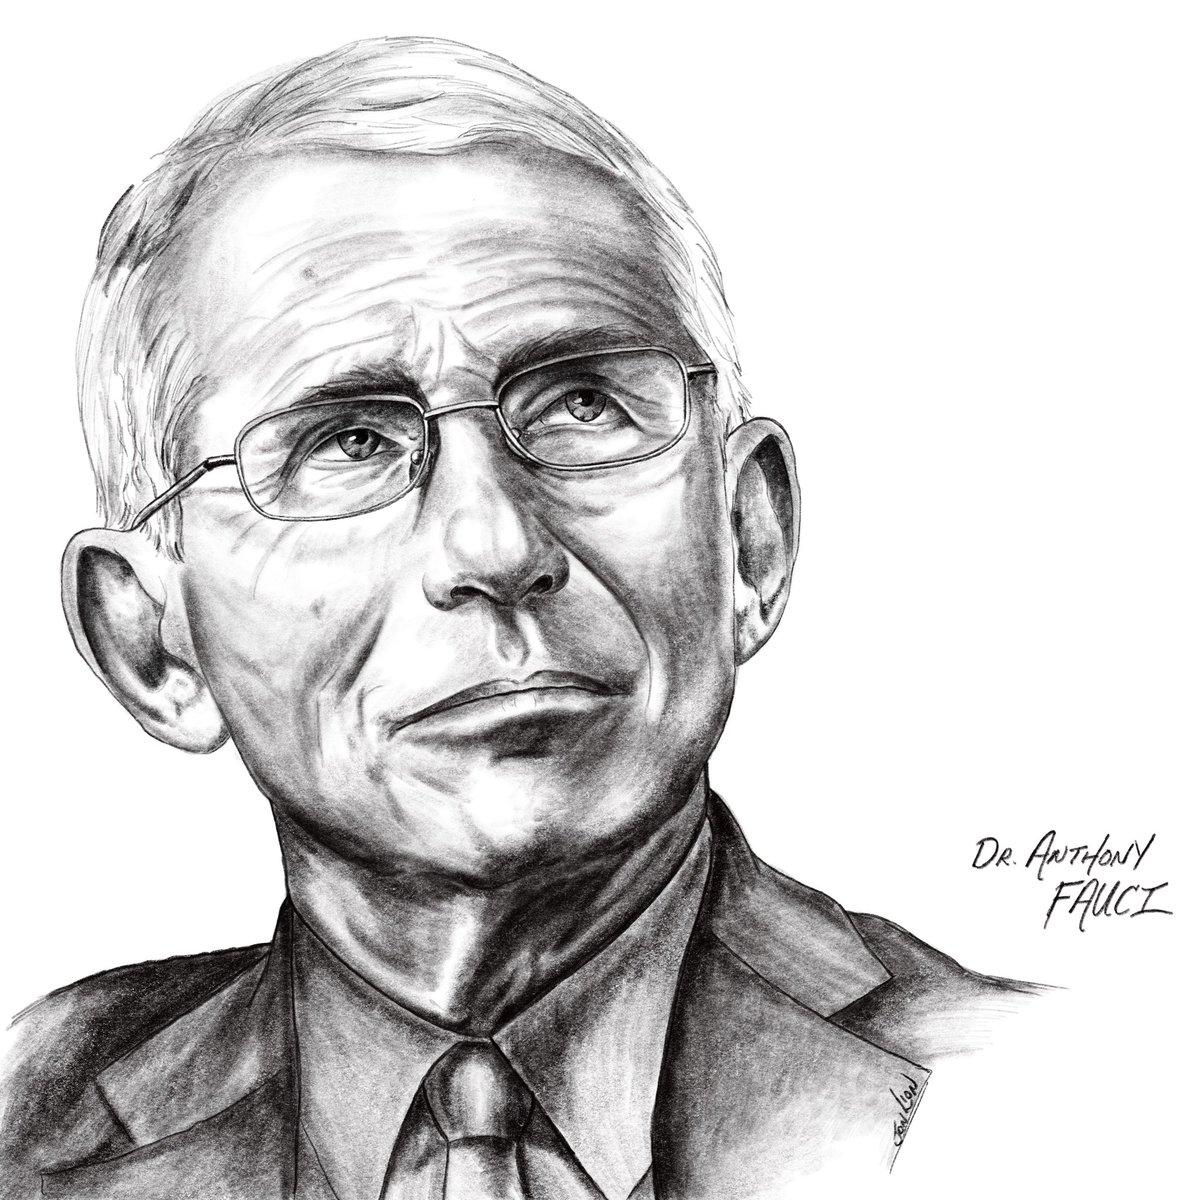 I trust science  Not racist, narcissistic impeached *presidents like #CoronaDon   Proud to say #IStandWithFauci   My #DrFauci Charcoal/pencil drawing: